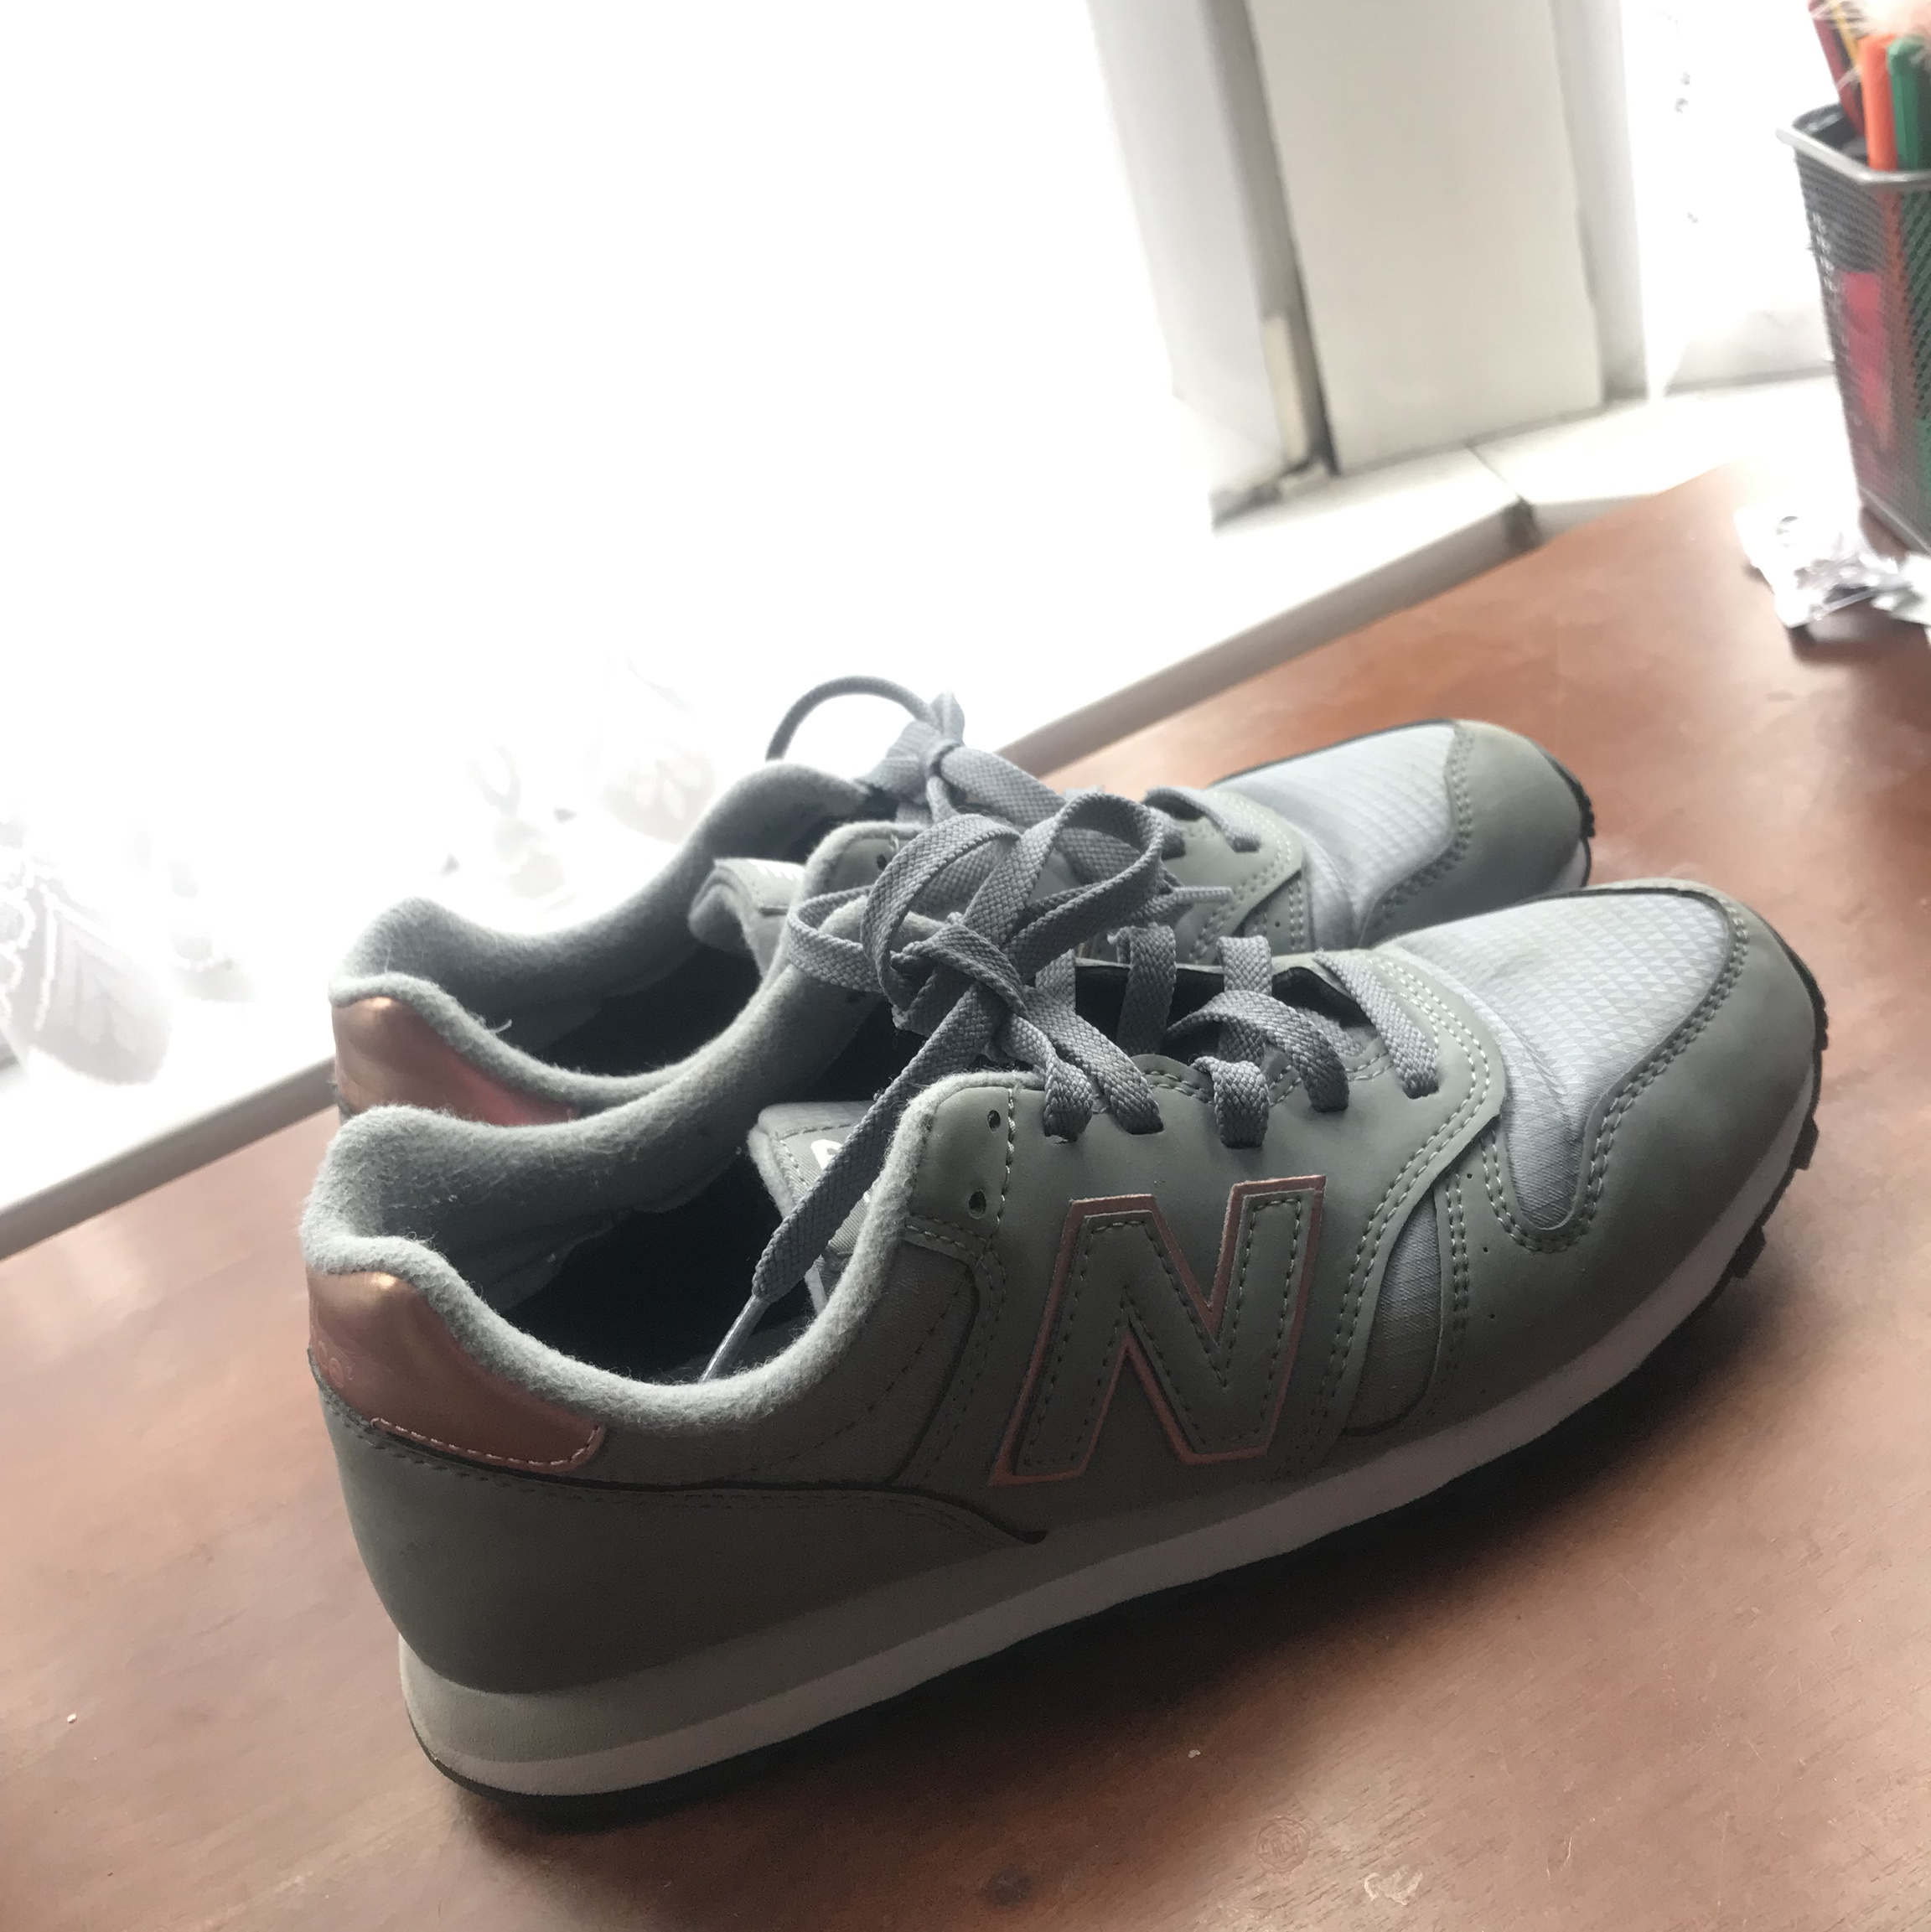 Nike New balance 373 trainers, grey and rose Depop